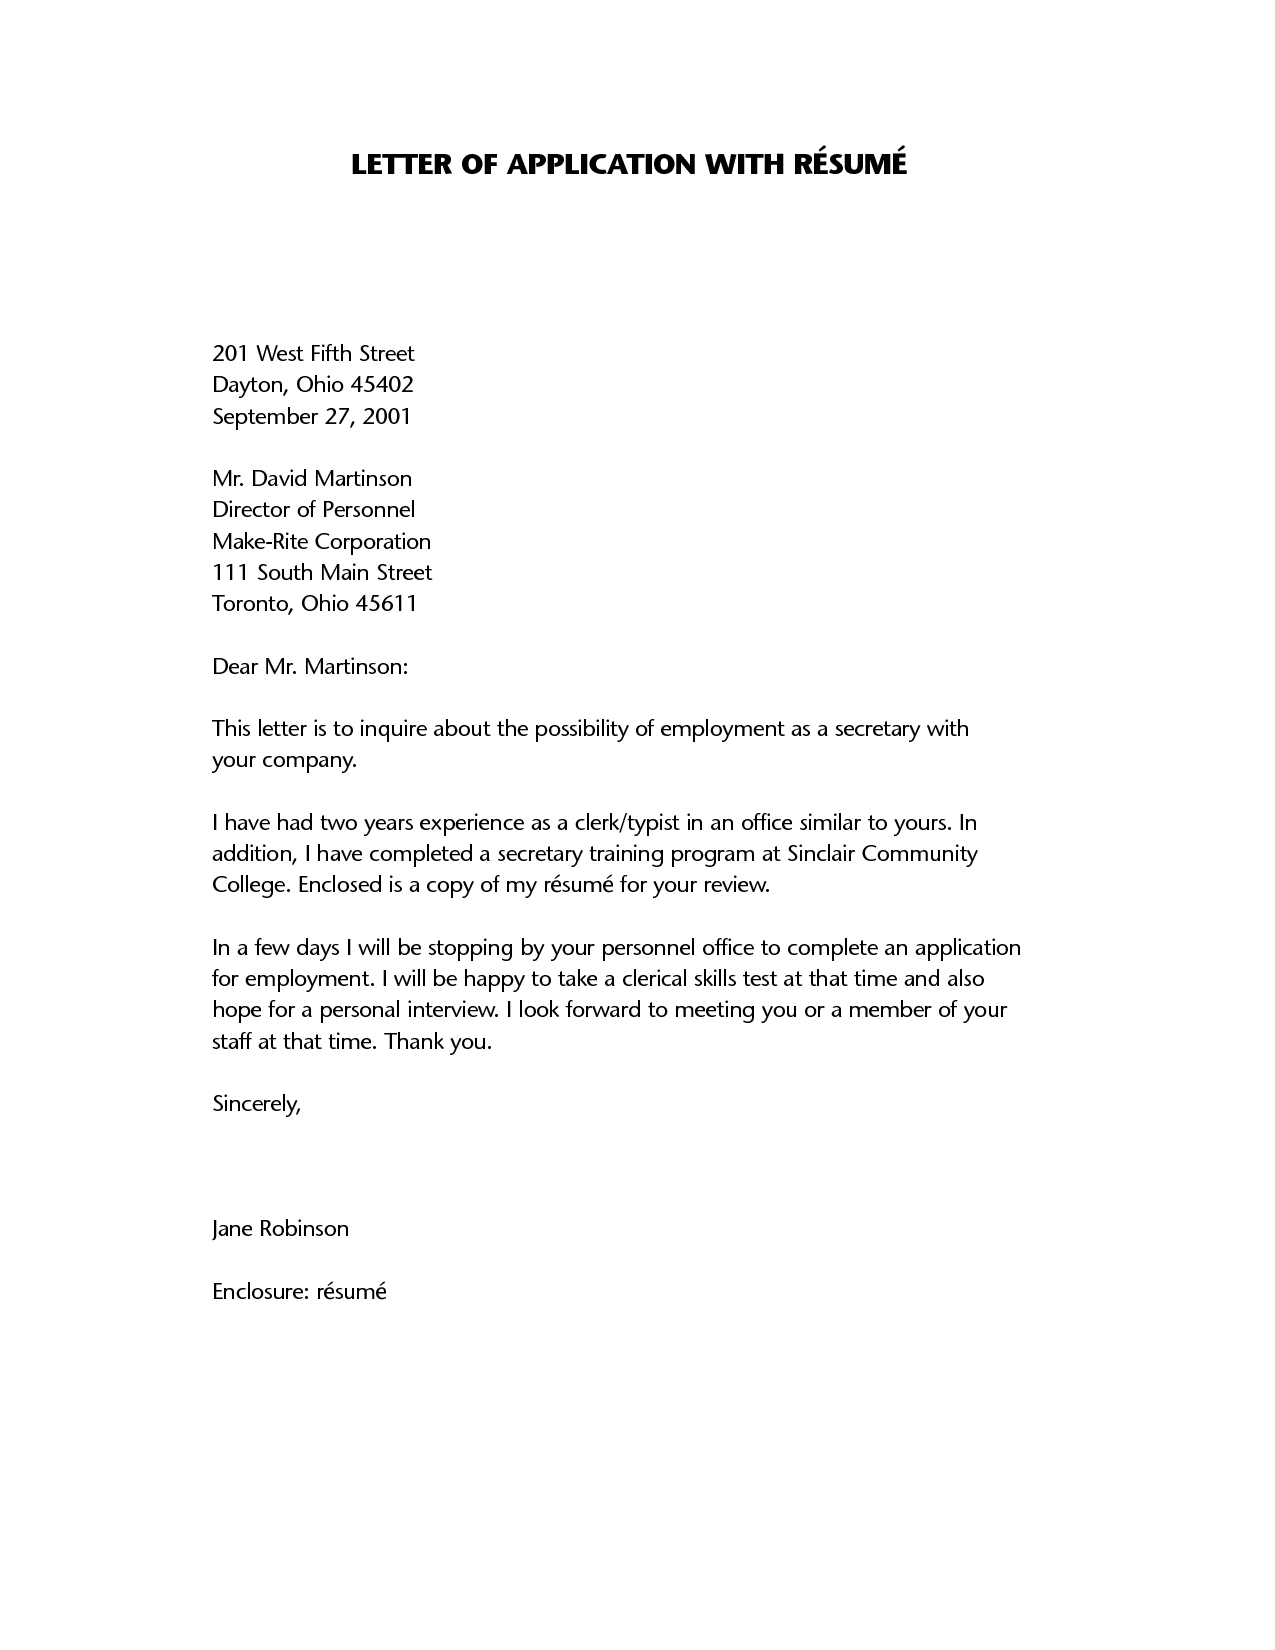 Covering Letter Format For Cv Choice Image letter format formal